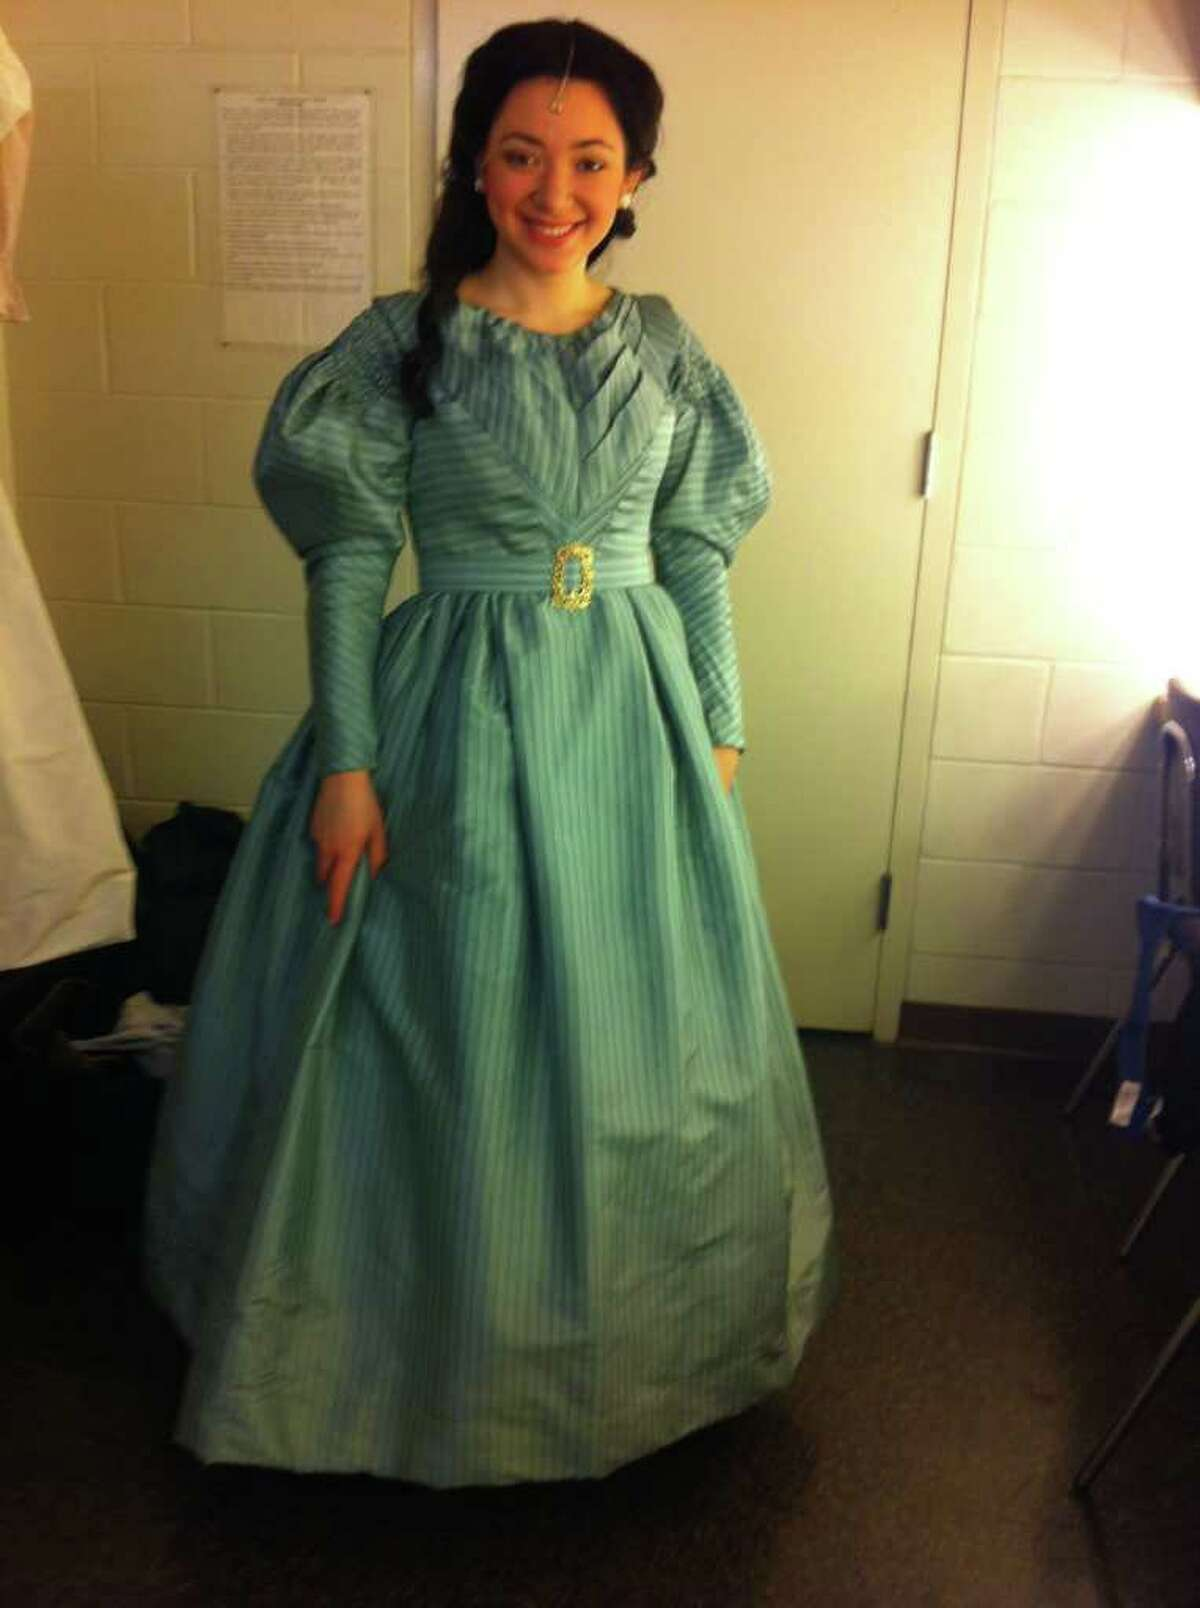 """Julie Benko of Fairfield is playing Cosette in the national tour of """"Les Miserables"""" arriving at the Bushnell in Hartford on March 6. Here she is seen backstage getting ready to go on in one of the earlier tour stops."""